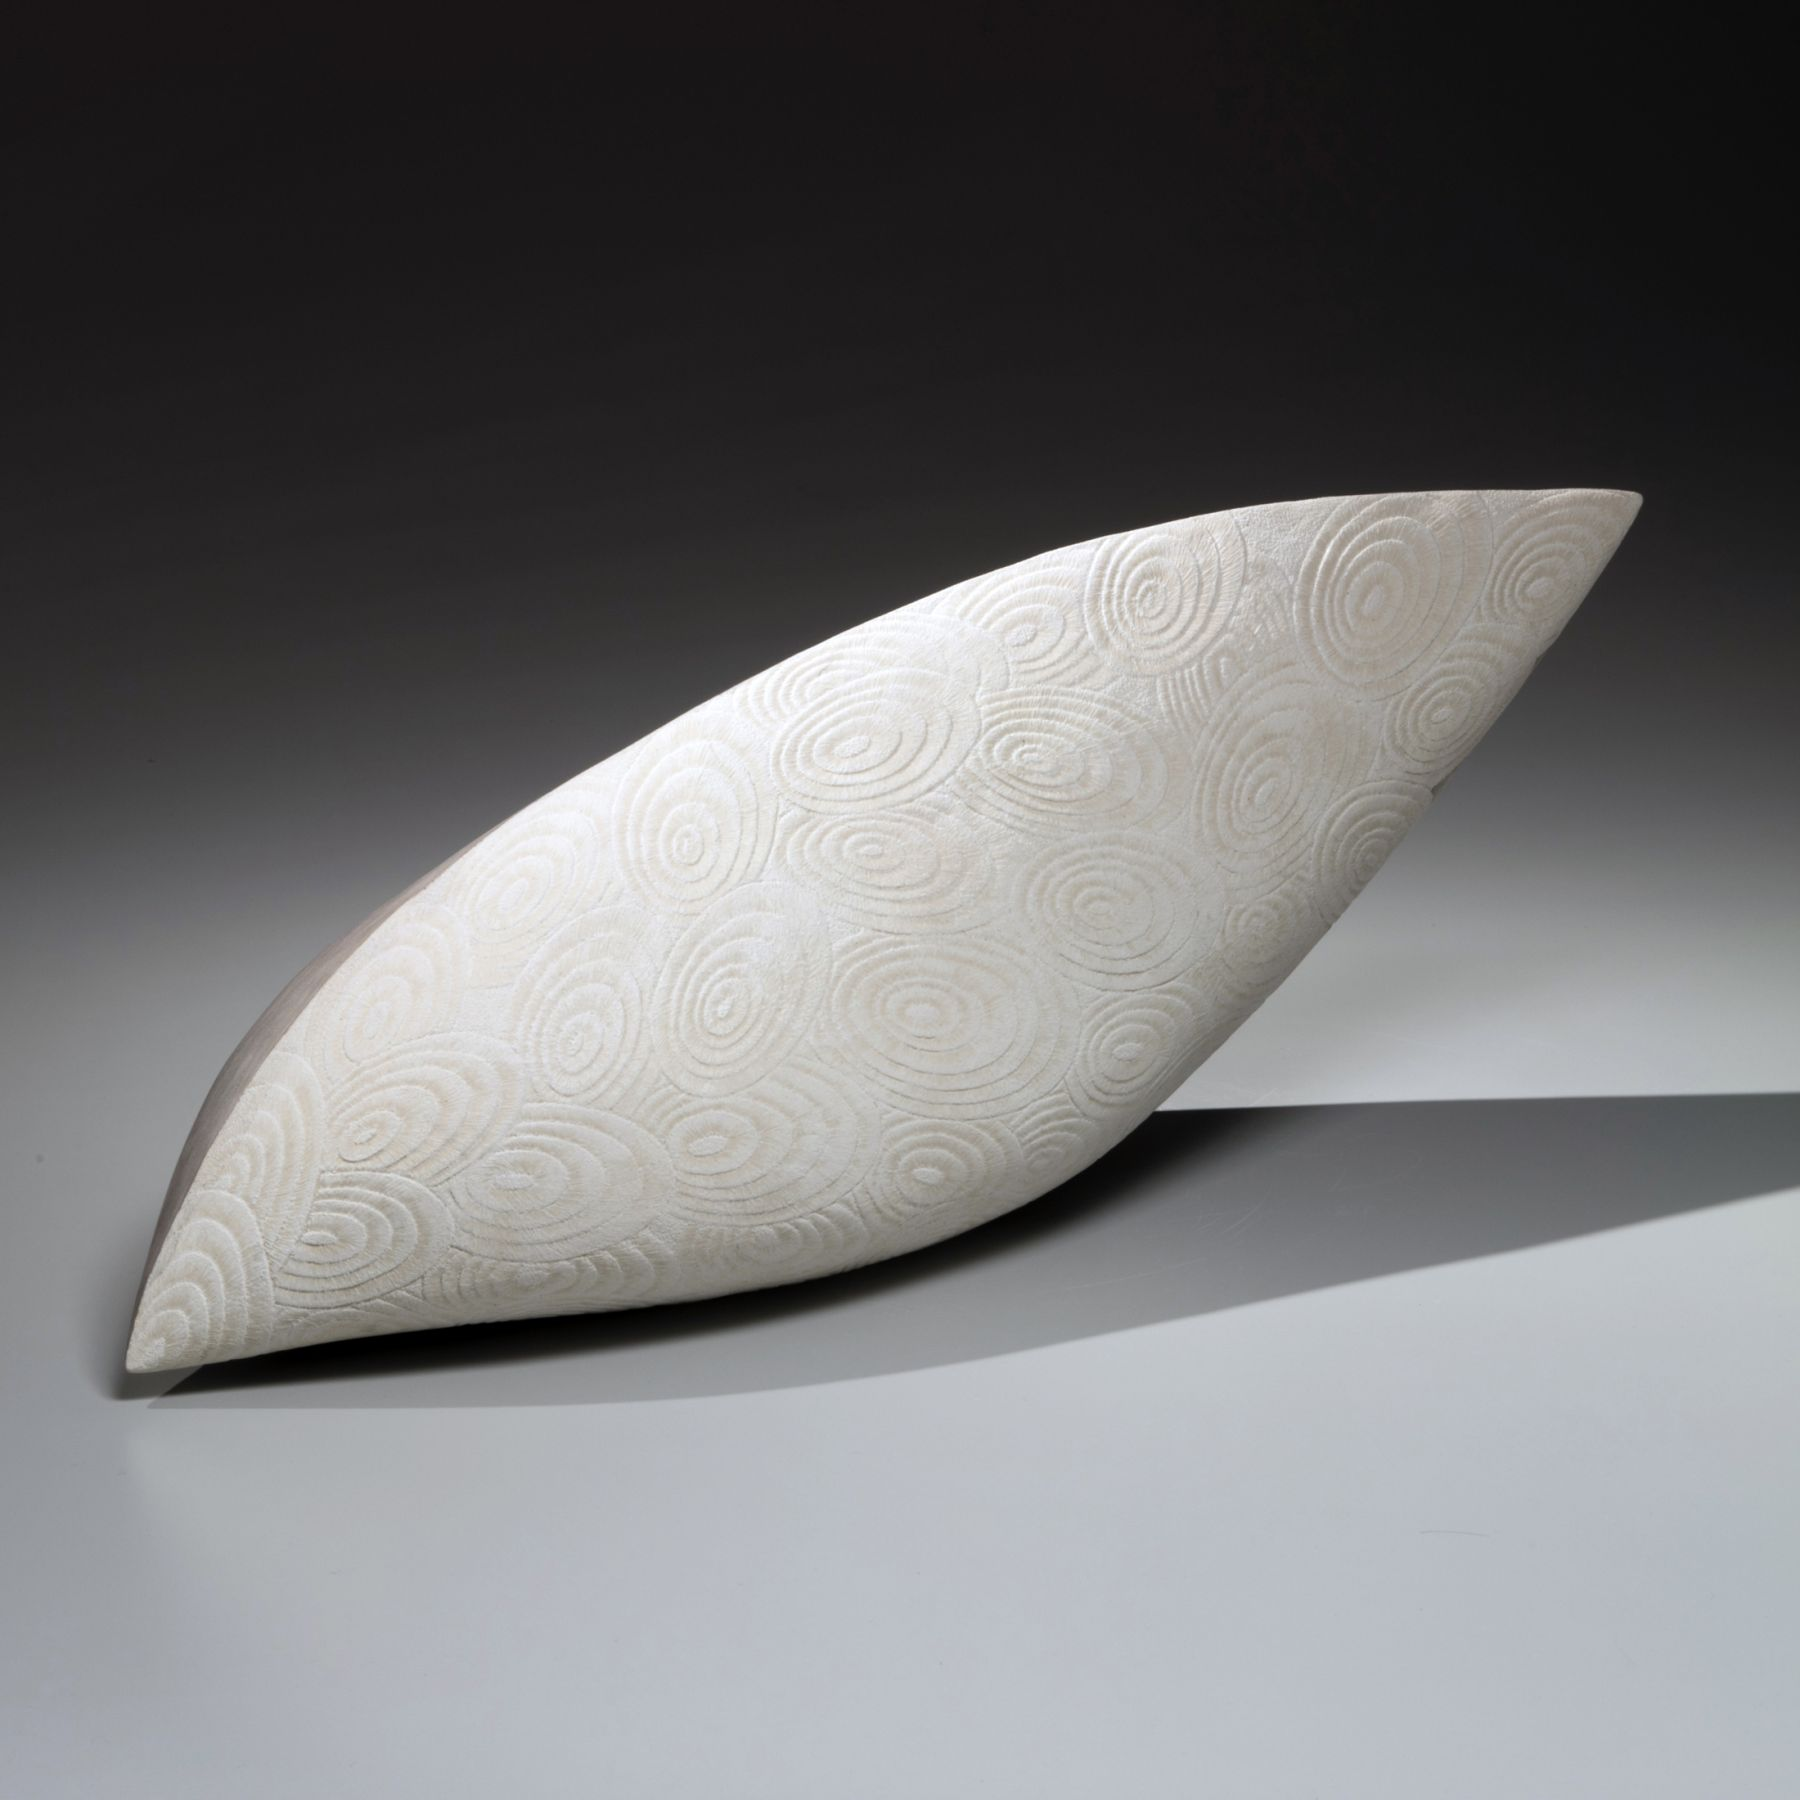 Azuma Kaori (b. 1972), Matte white and silver, carvedshell patterned sculpture